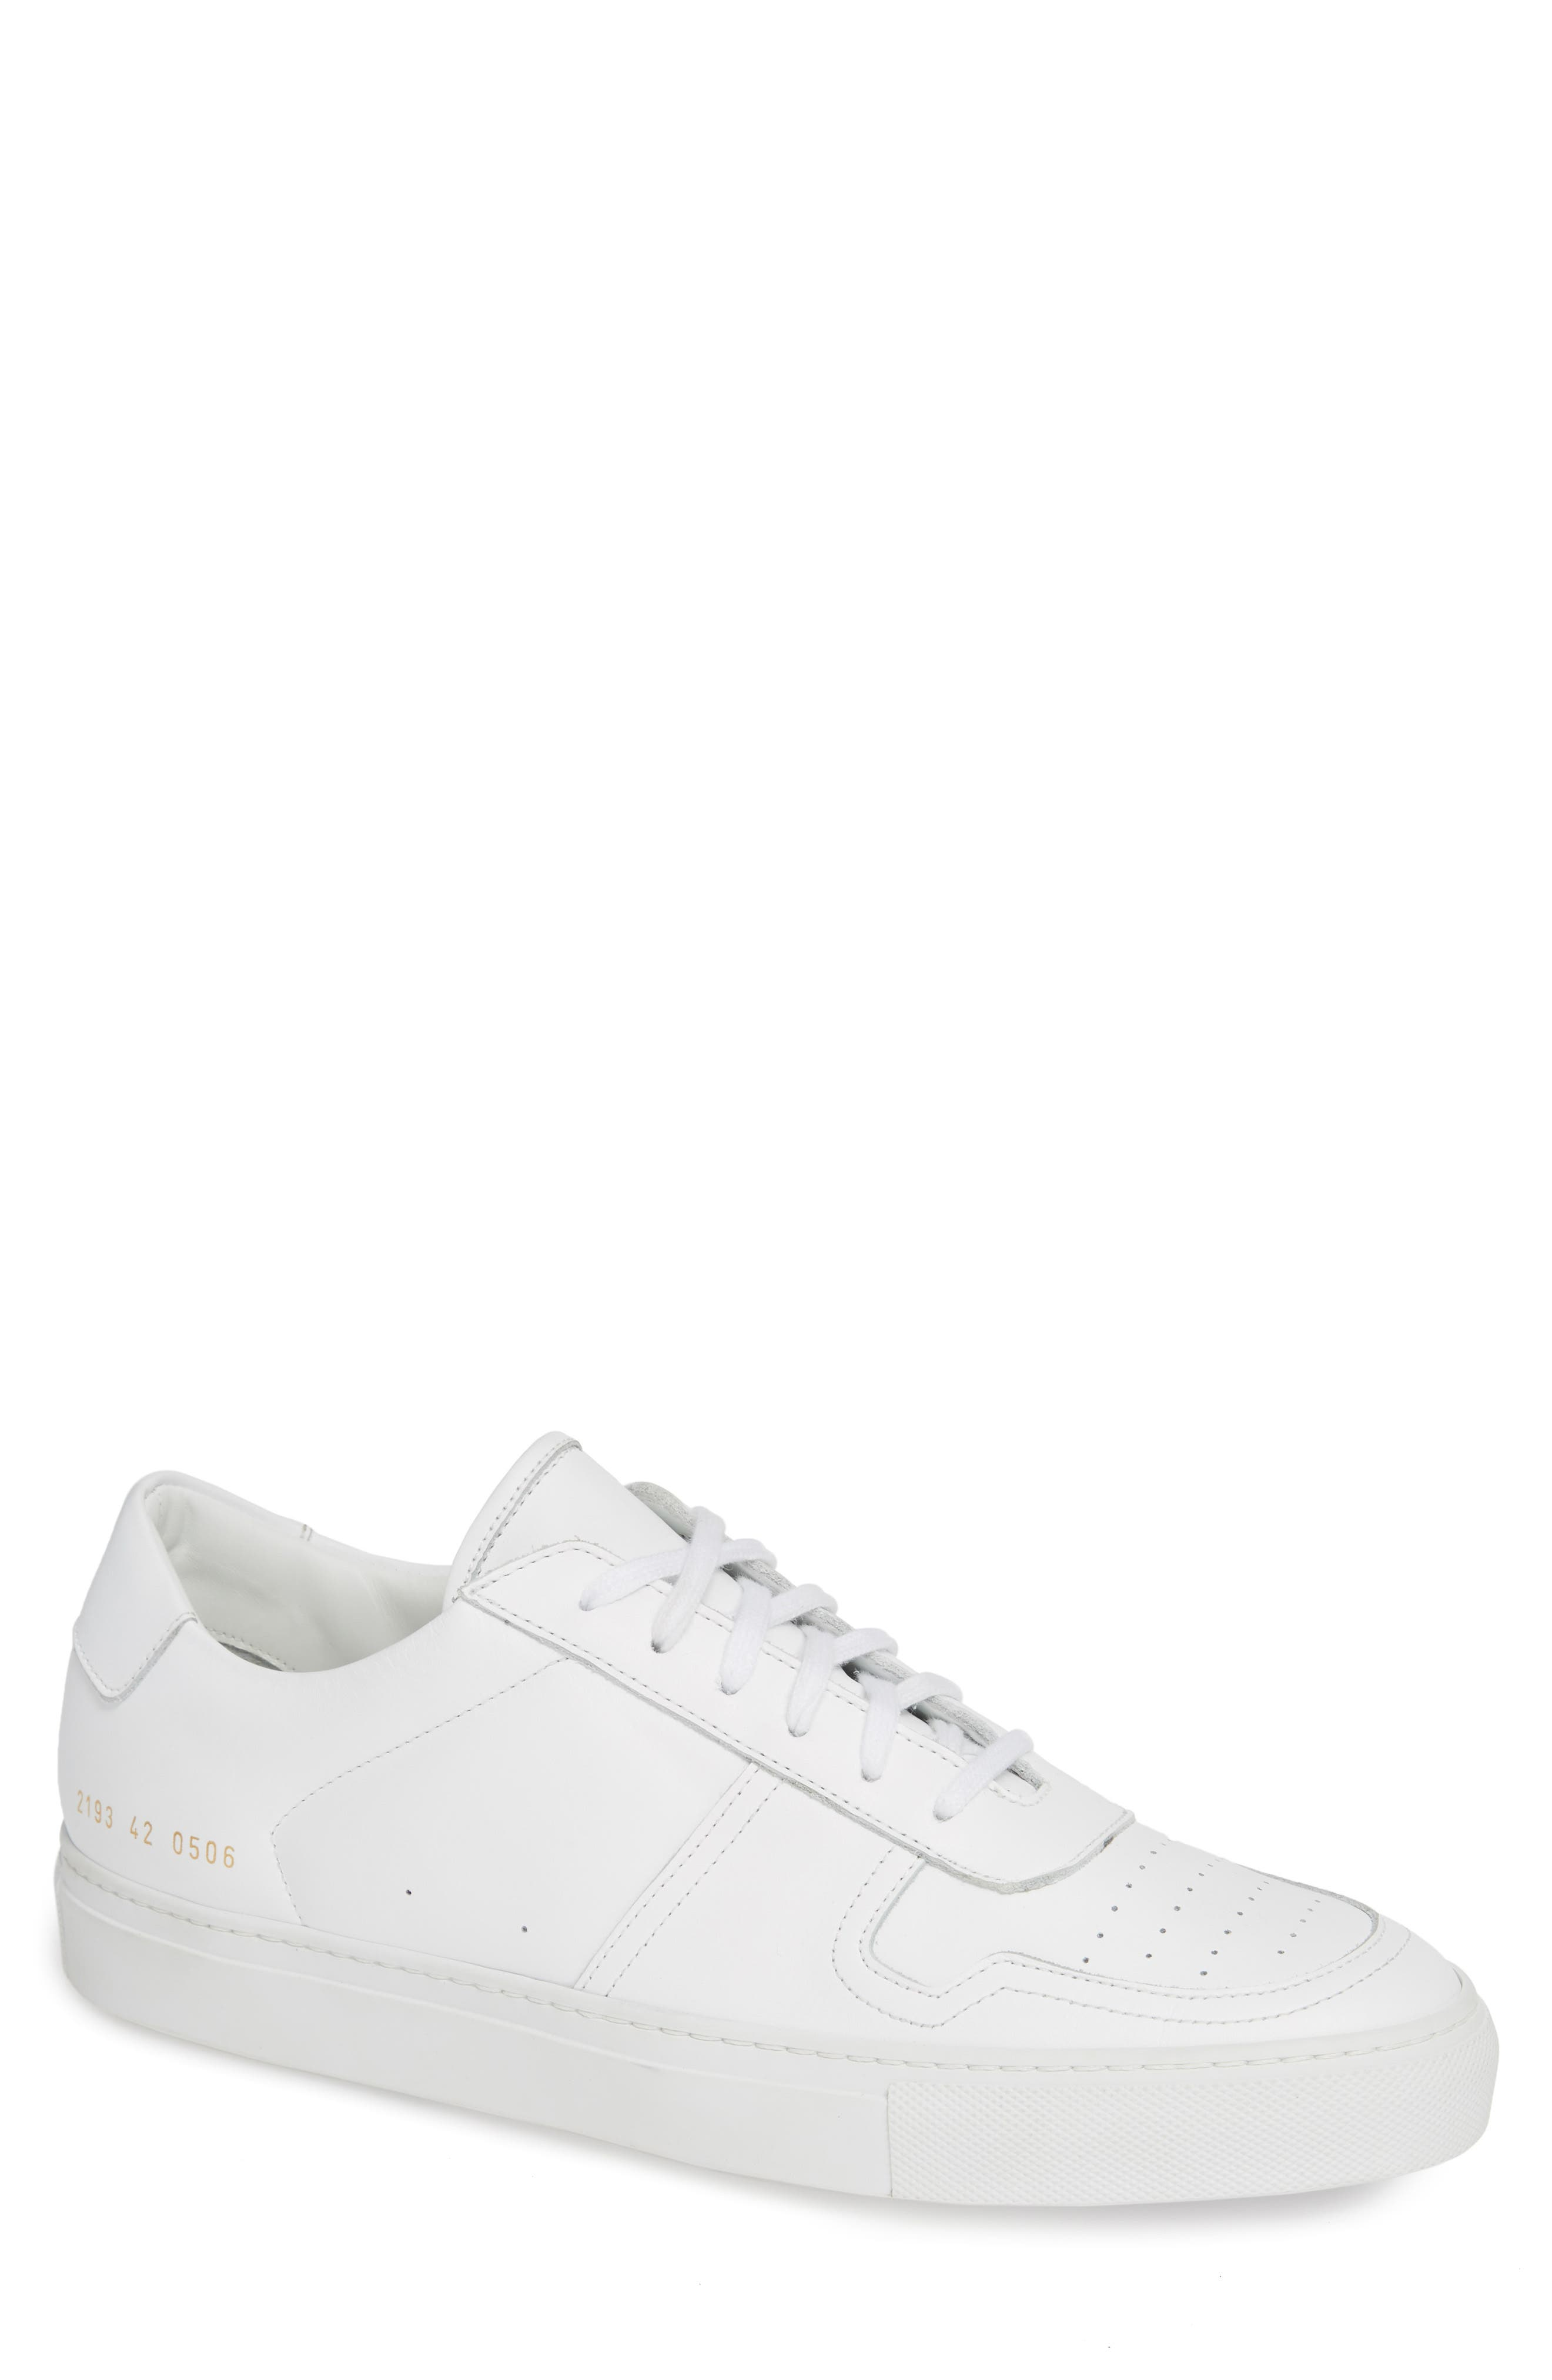 COMMON PROJECTS,                             Bball Low Top Sneaker,                             Main thumbnail 1, color,                             WHITE